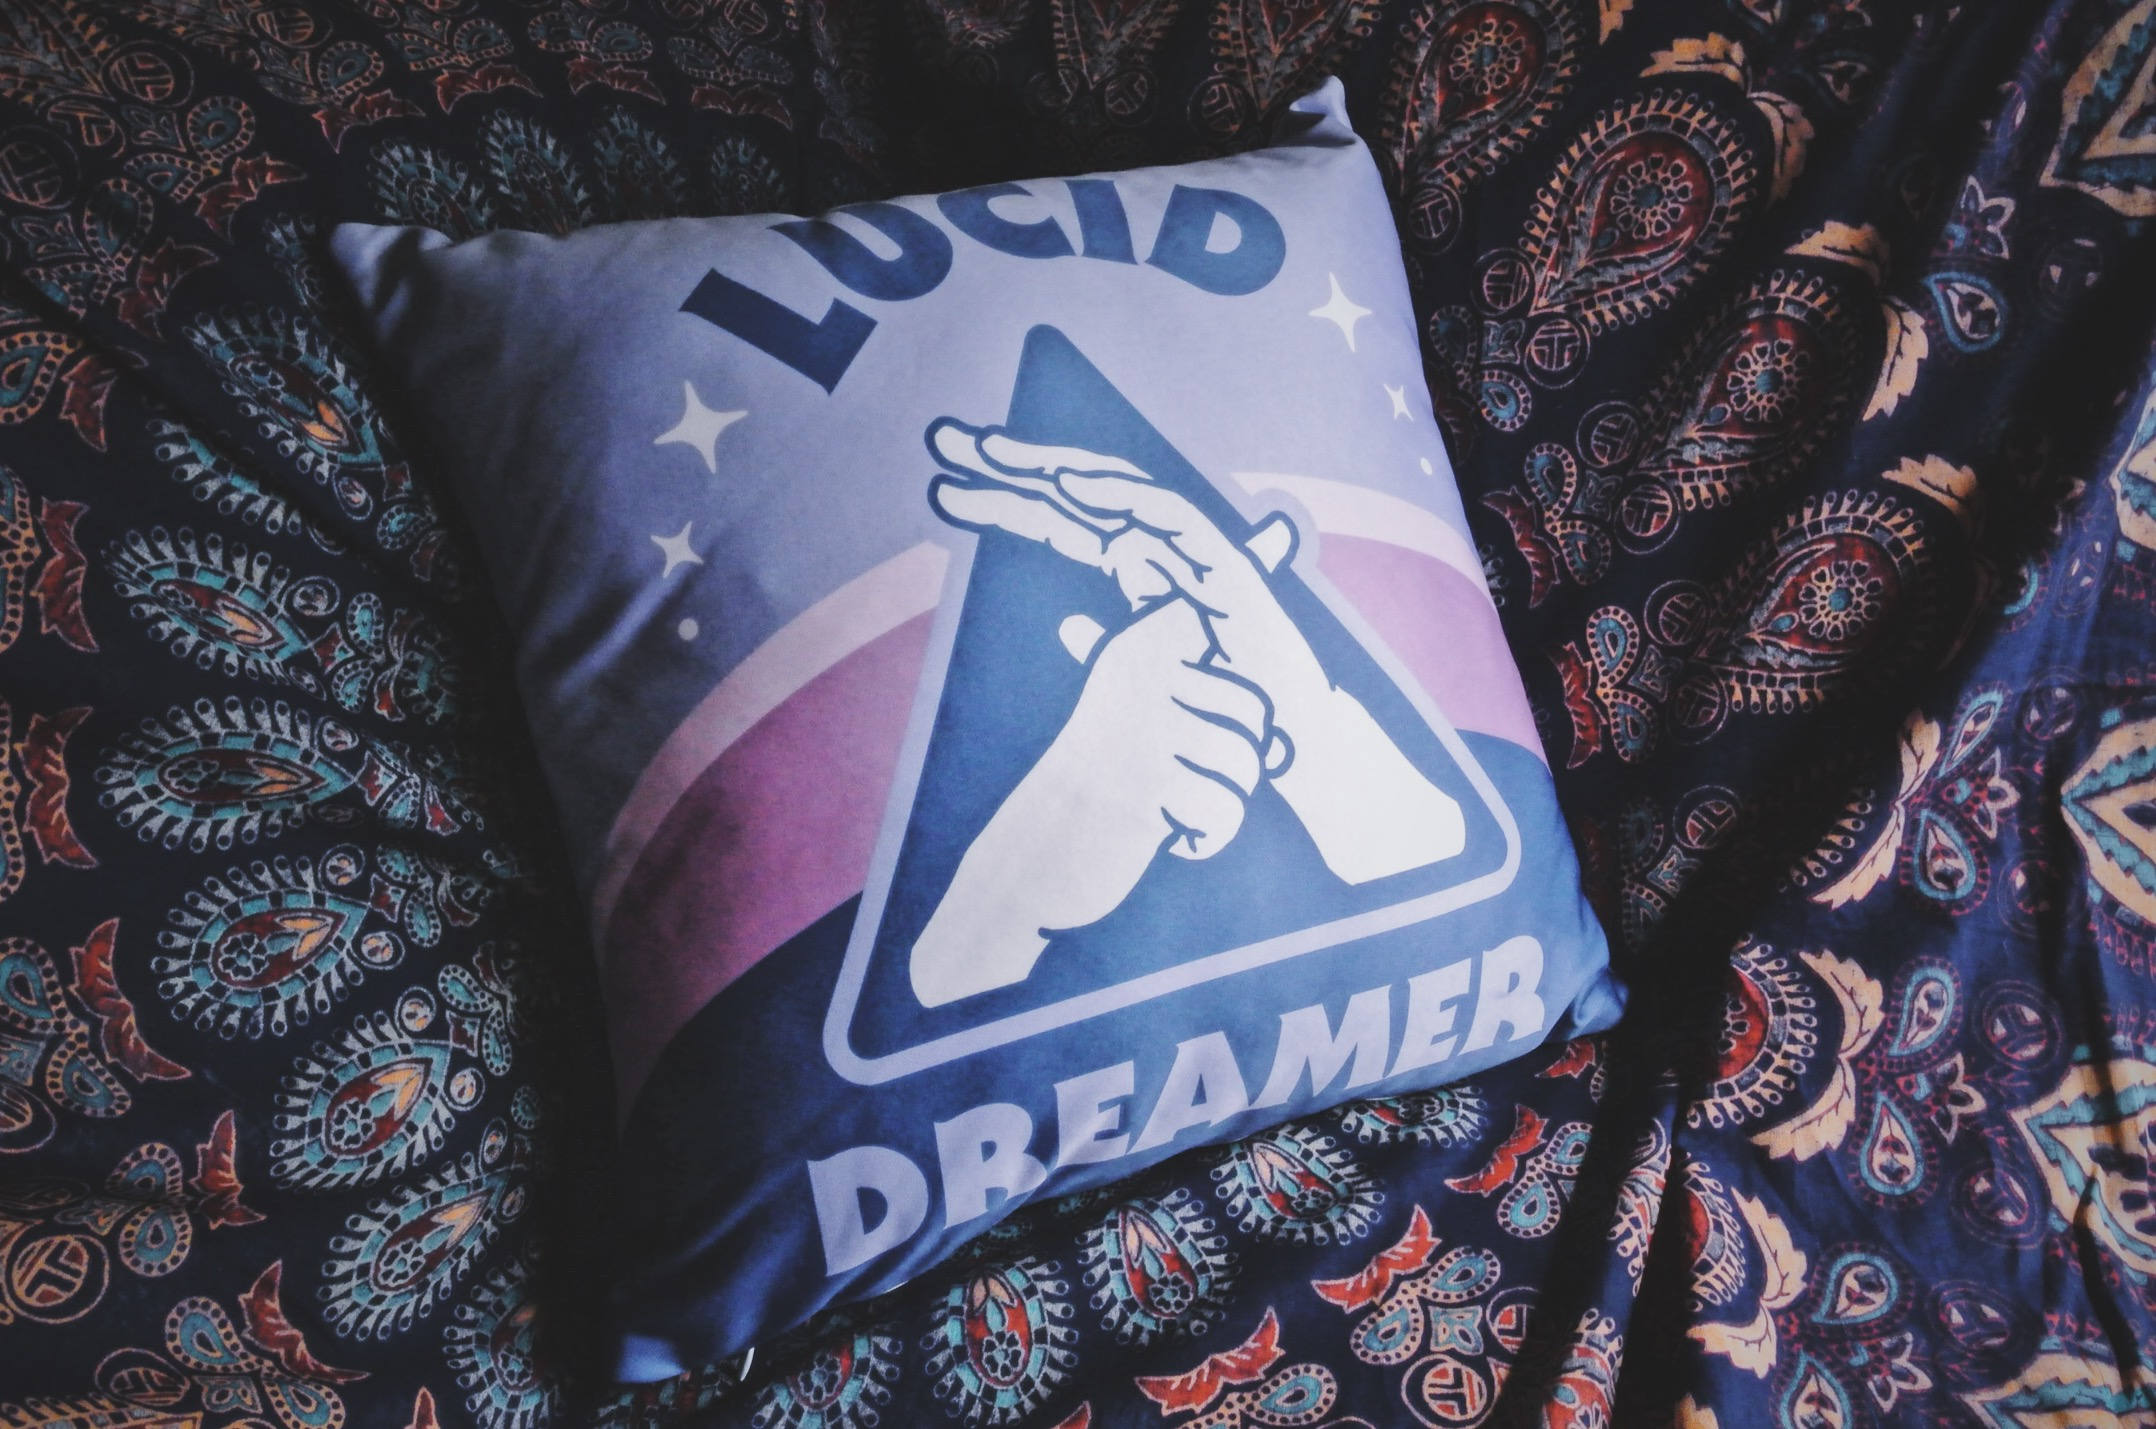 Pillow available at Starseed Supply Co - Jeff Finley Interview - Journey of Self Discovery - Steady Focused